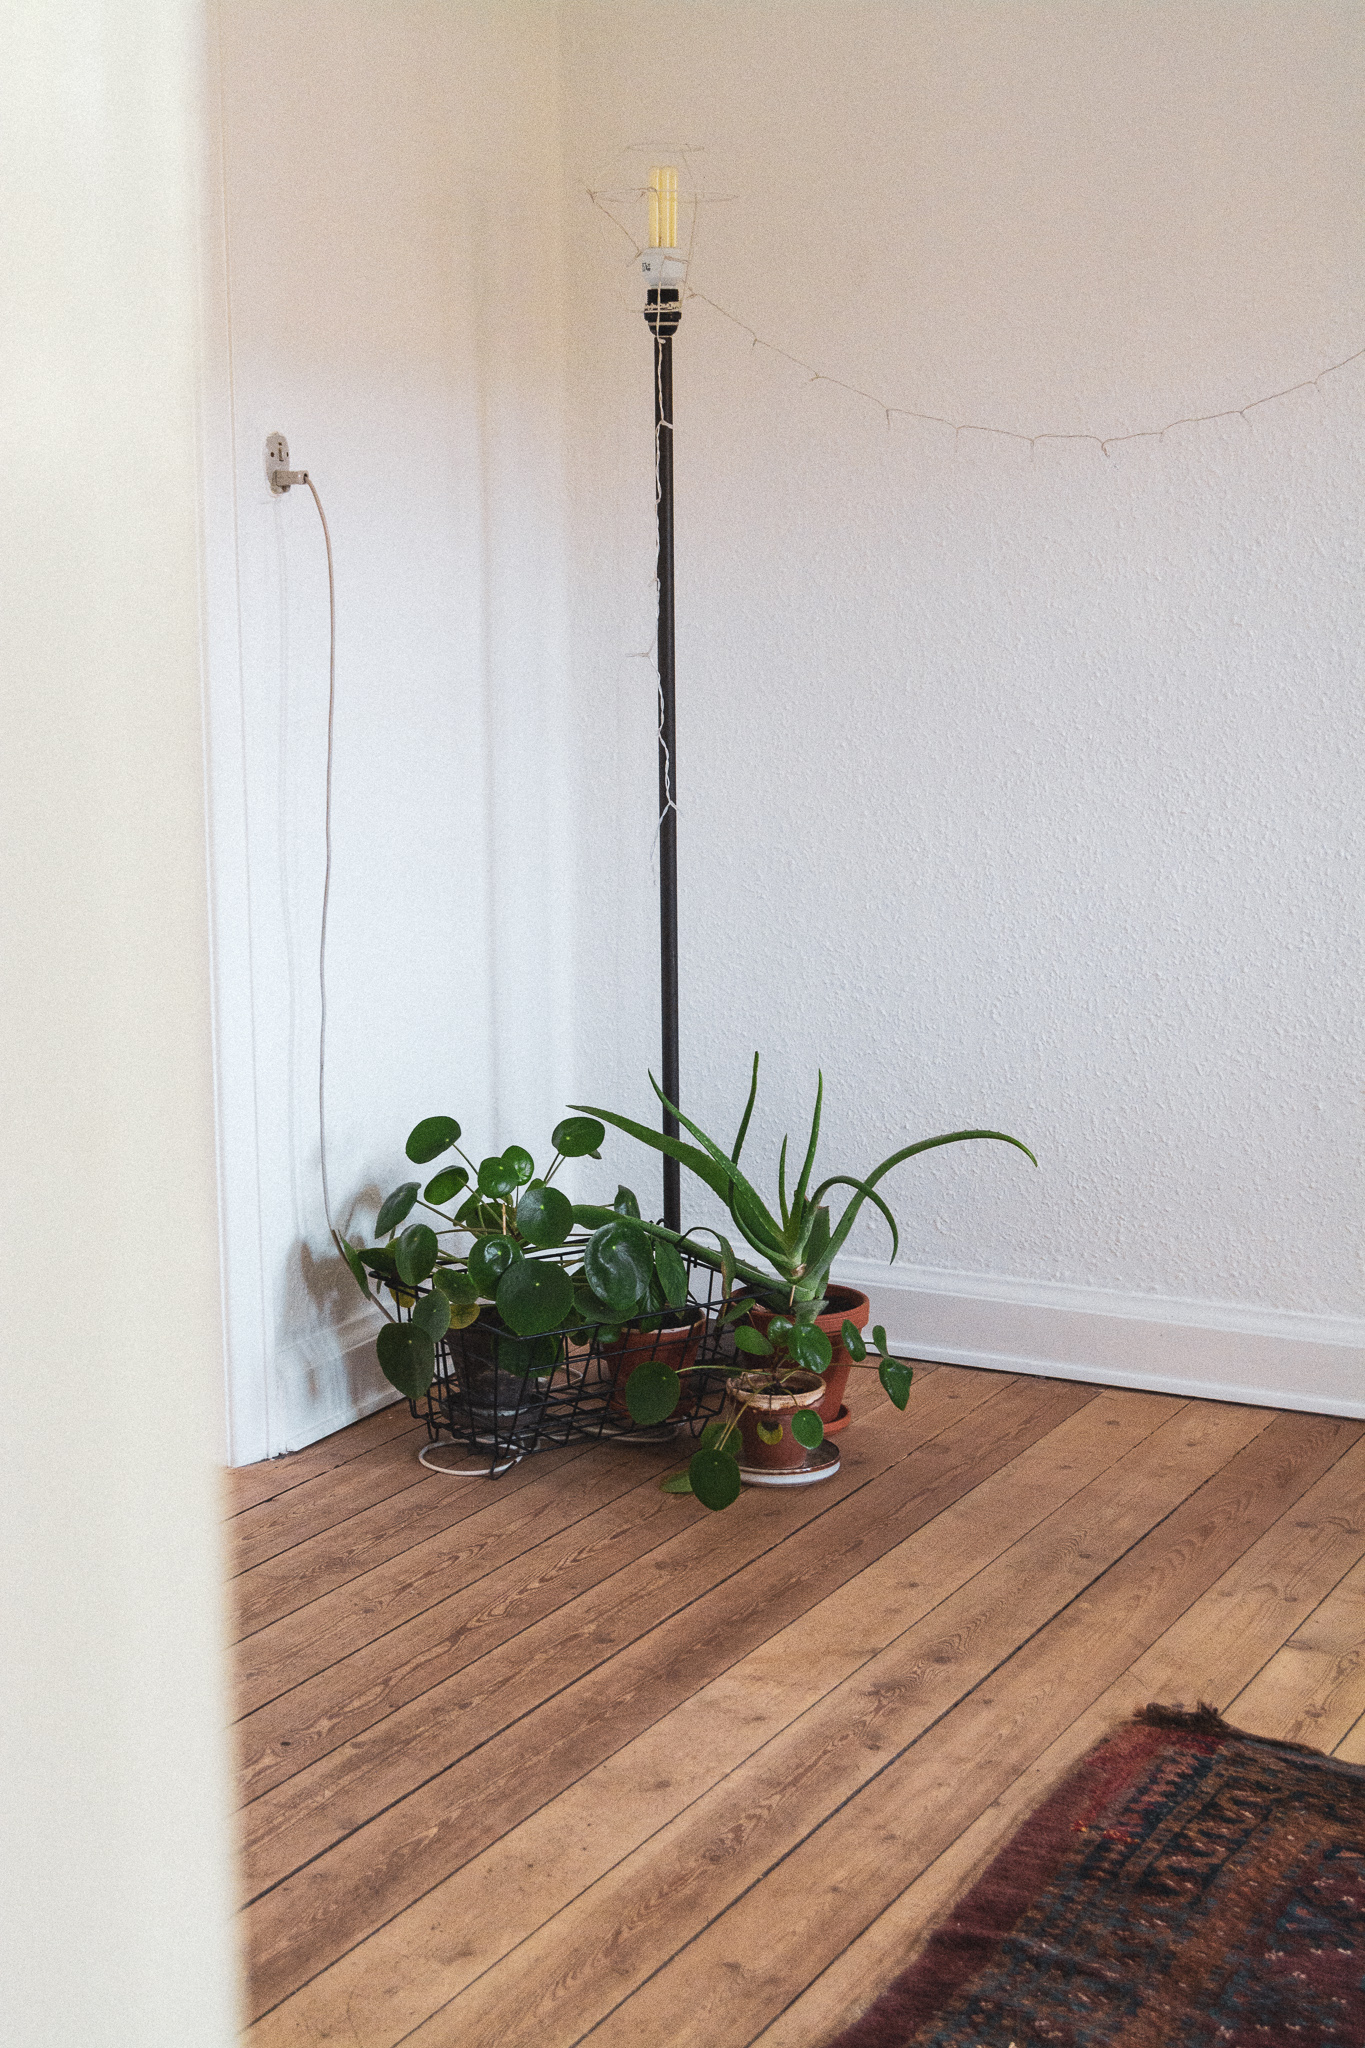 plantedekoration, plantvdecoration, basket, kurv, lampe, lamp, wooden floor, trægulv, livingroom, stue, stories by holst